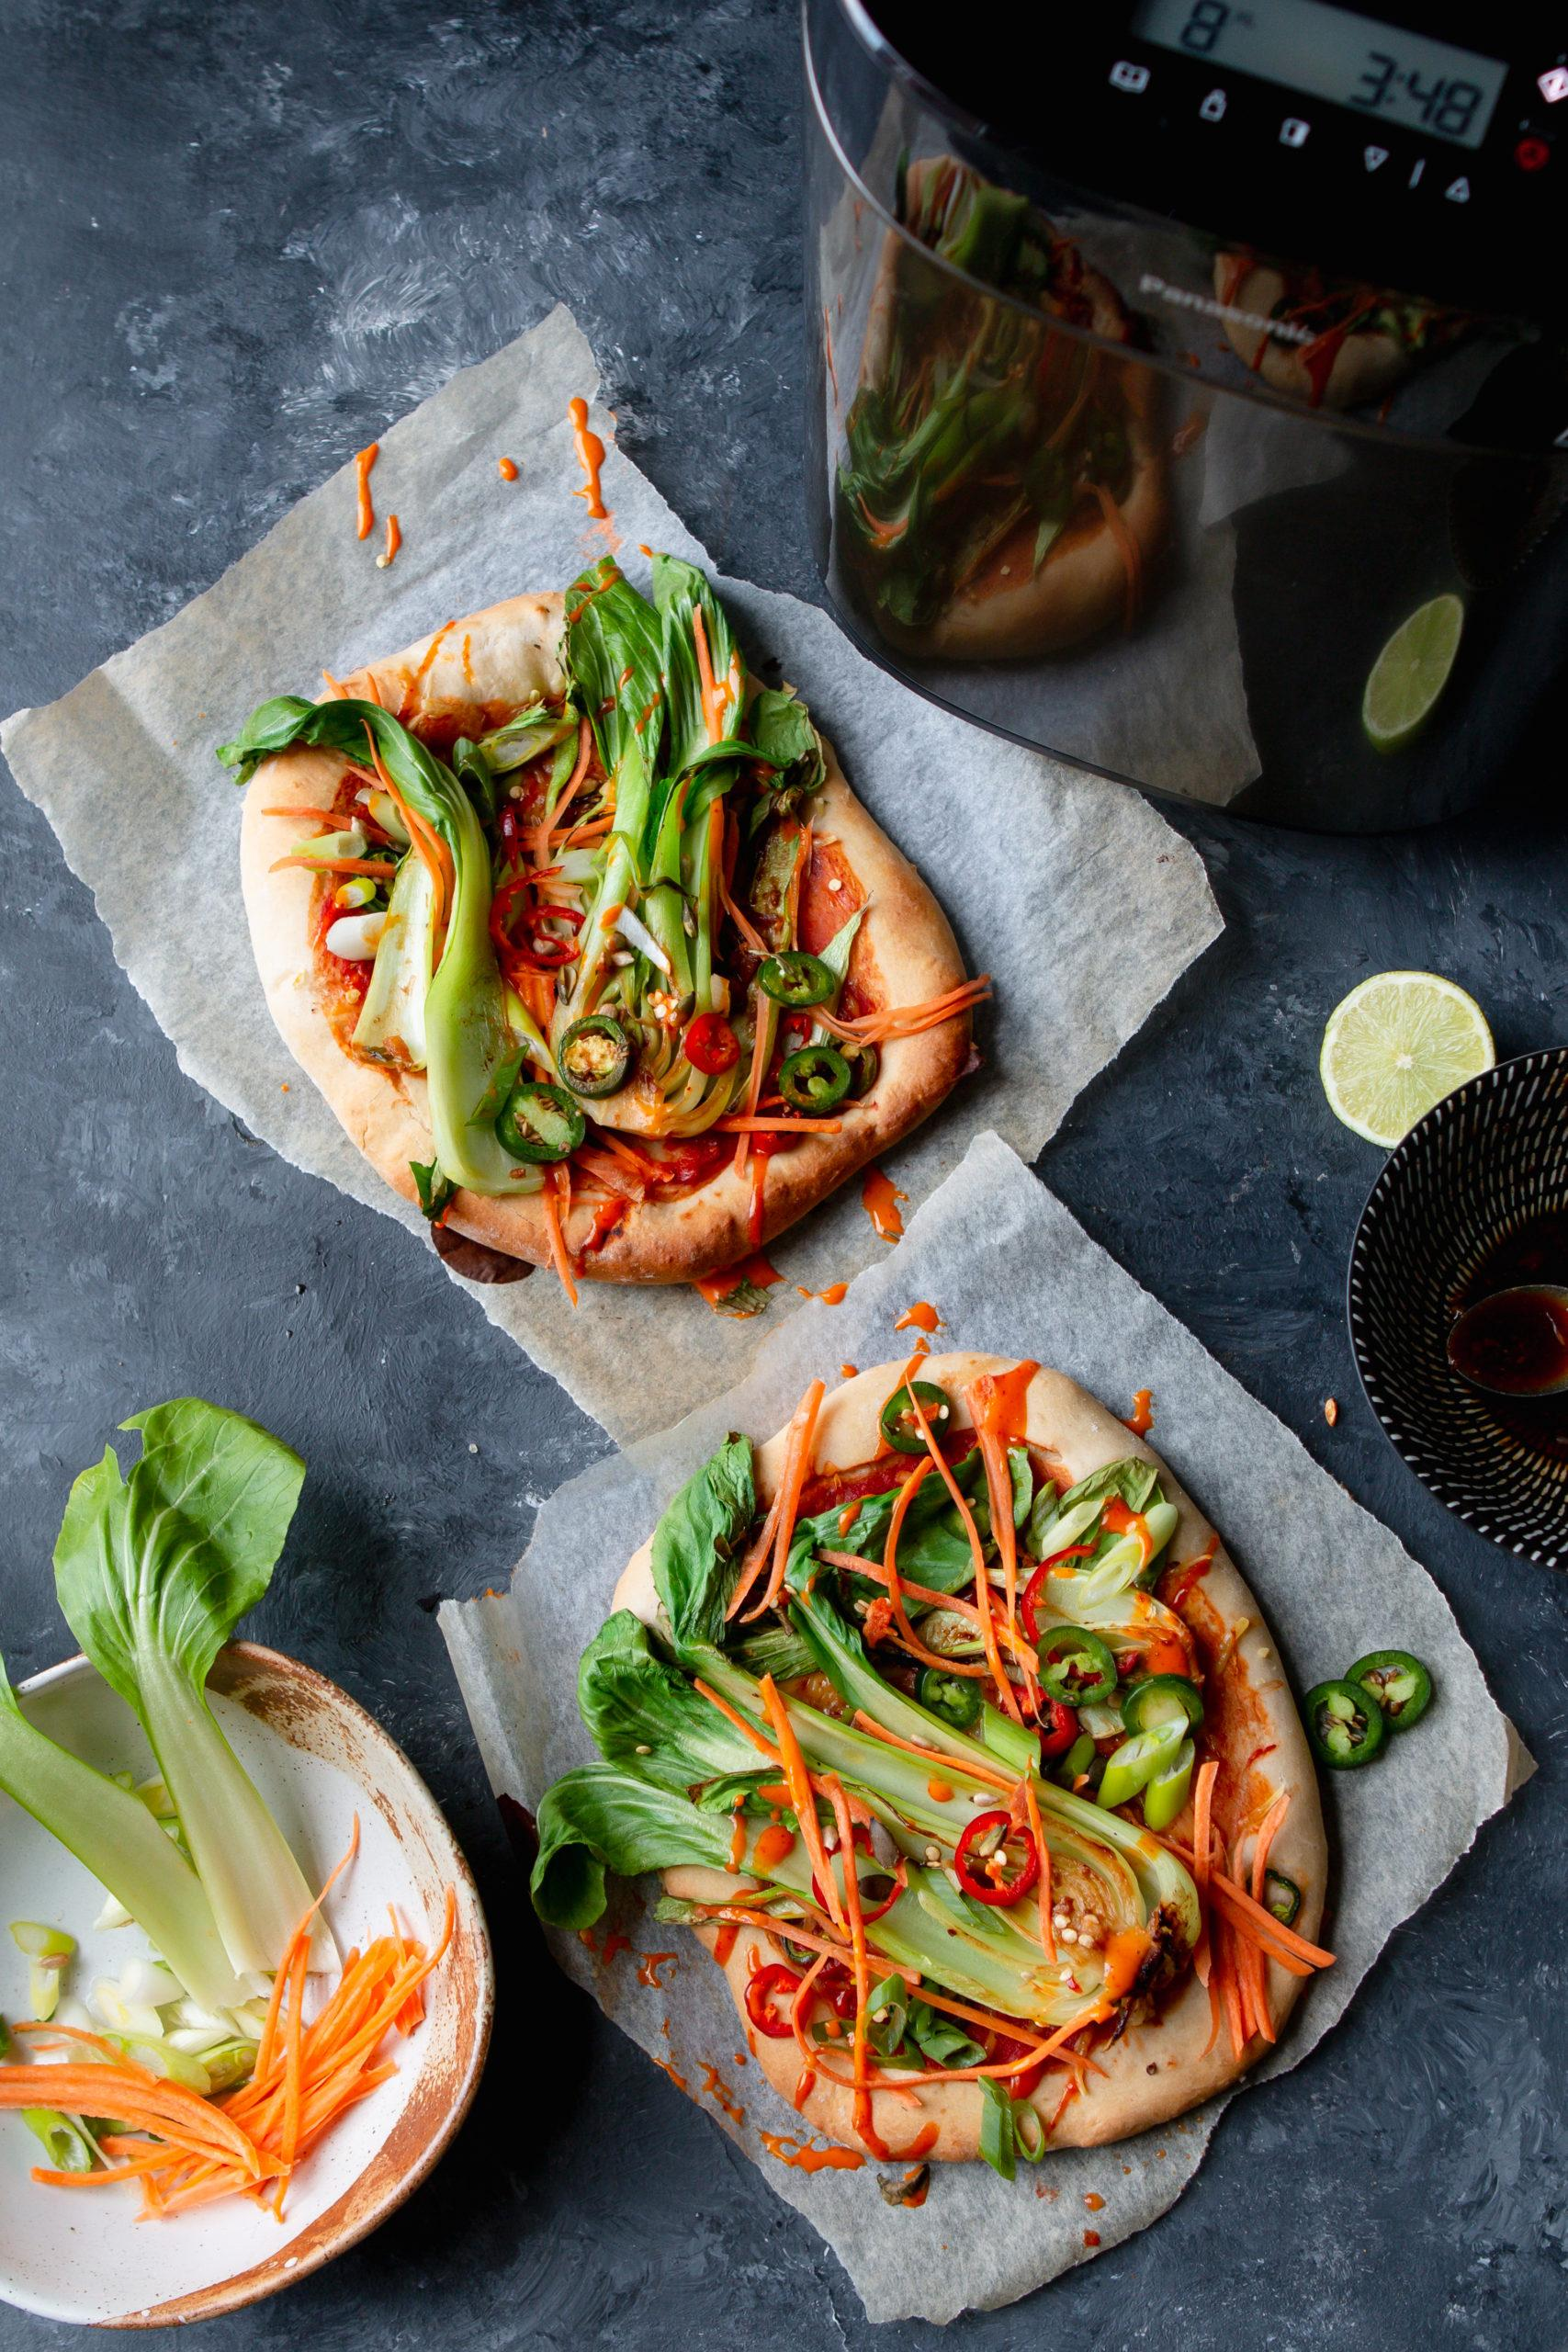 banh mi pizza topping vegan